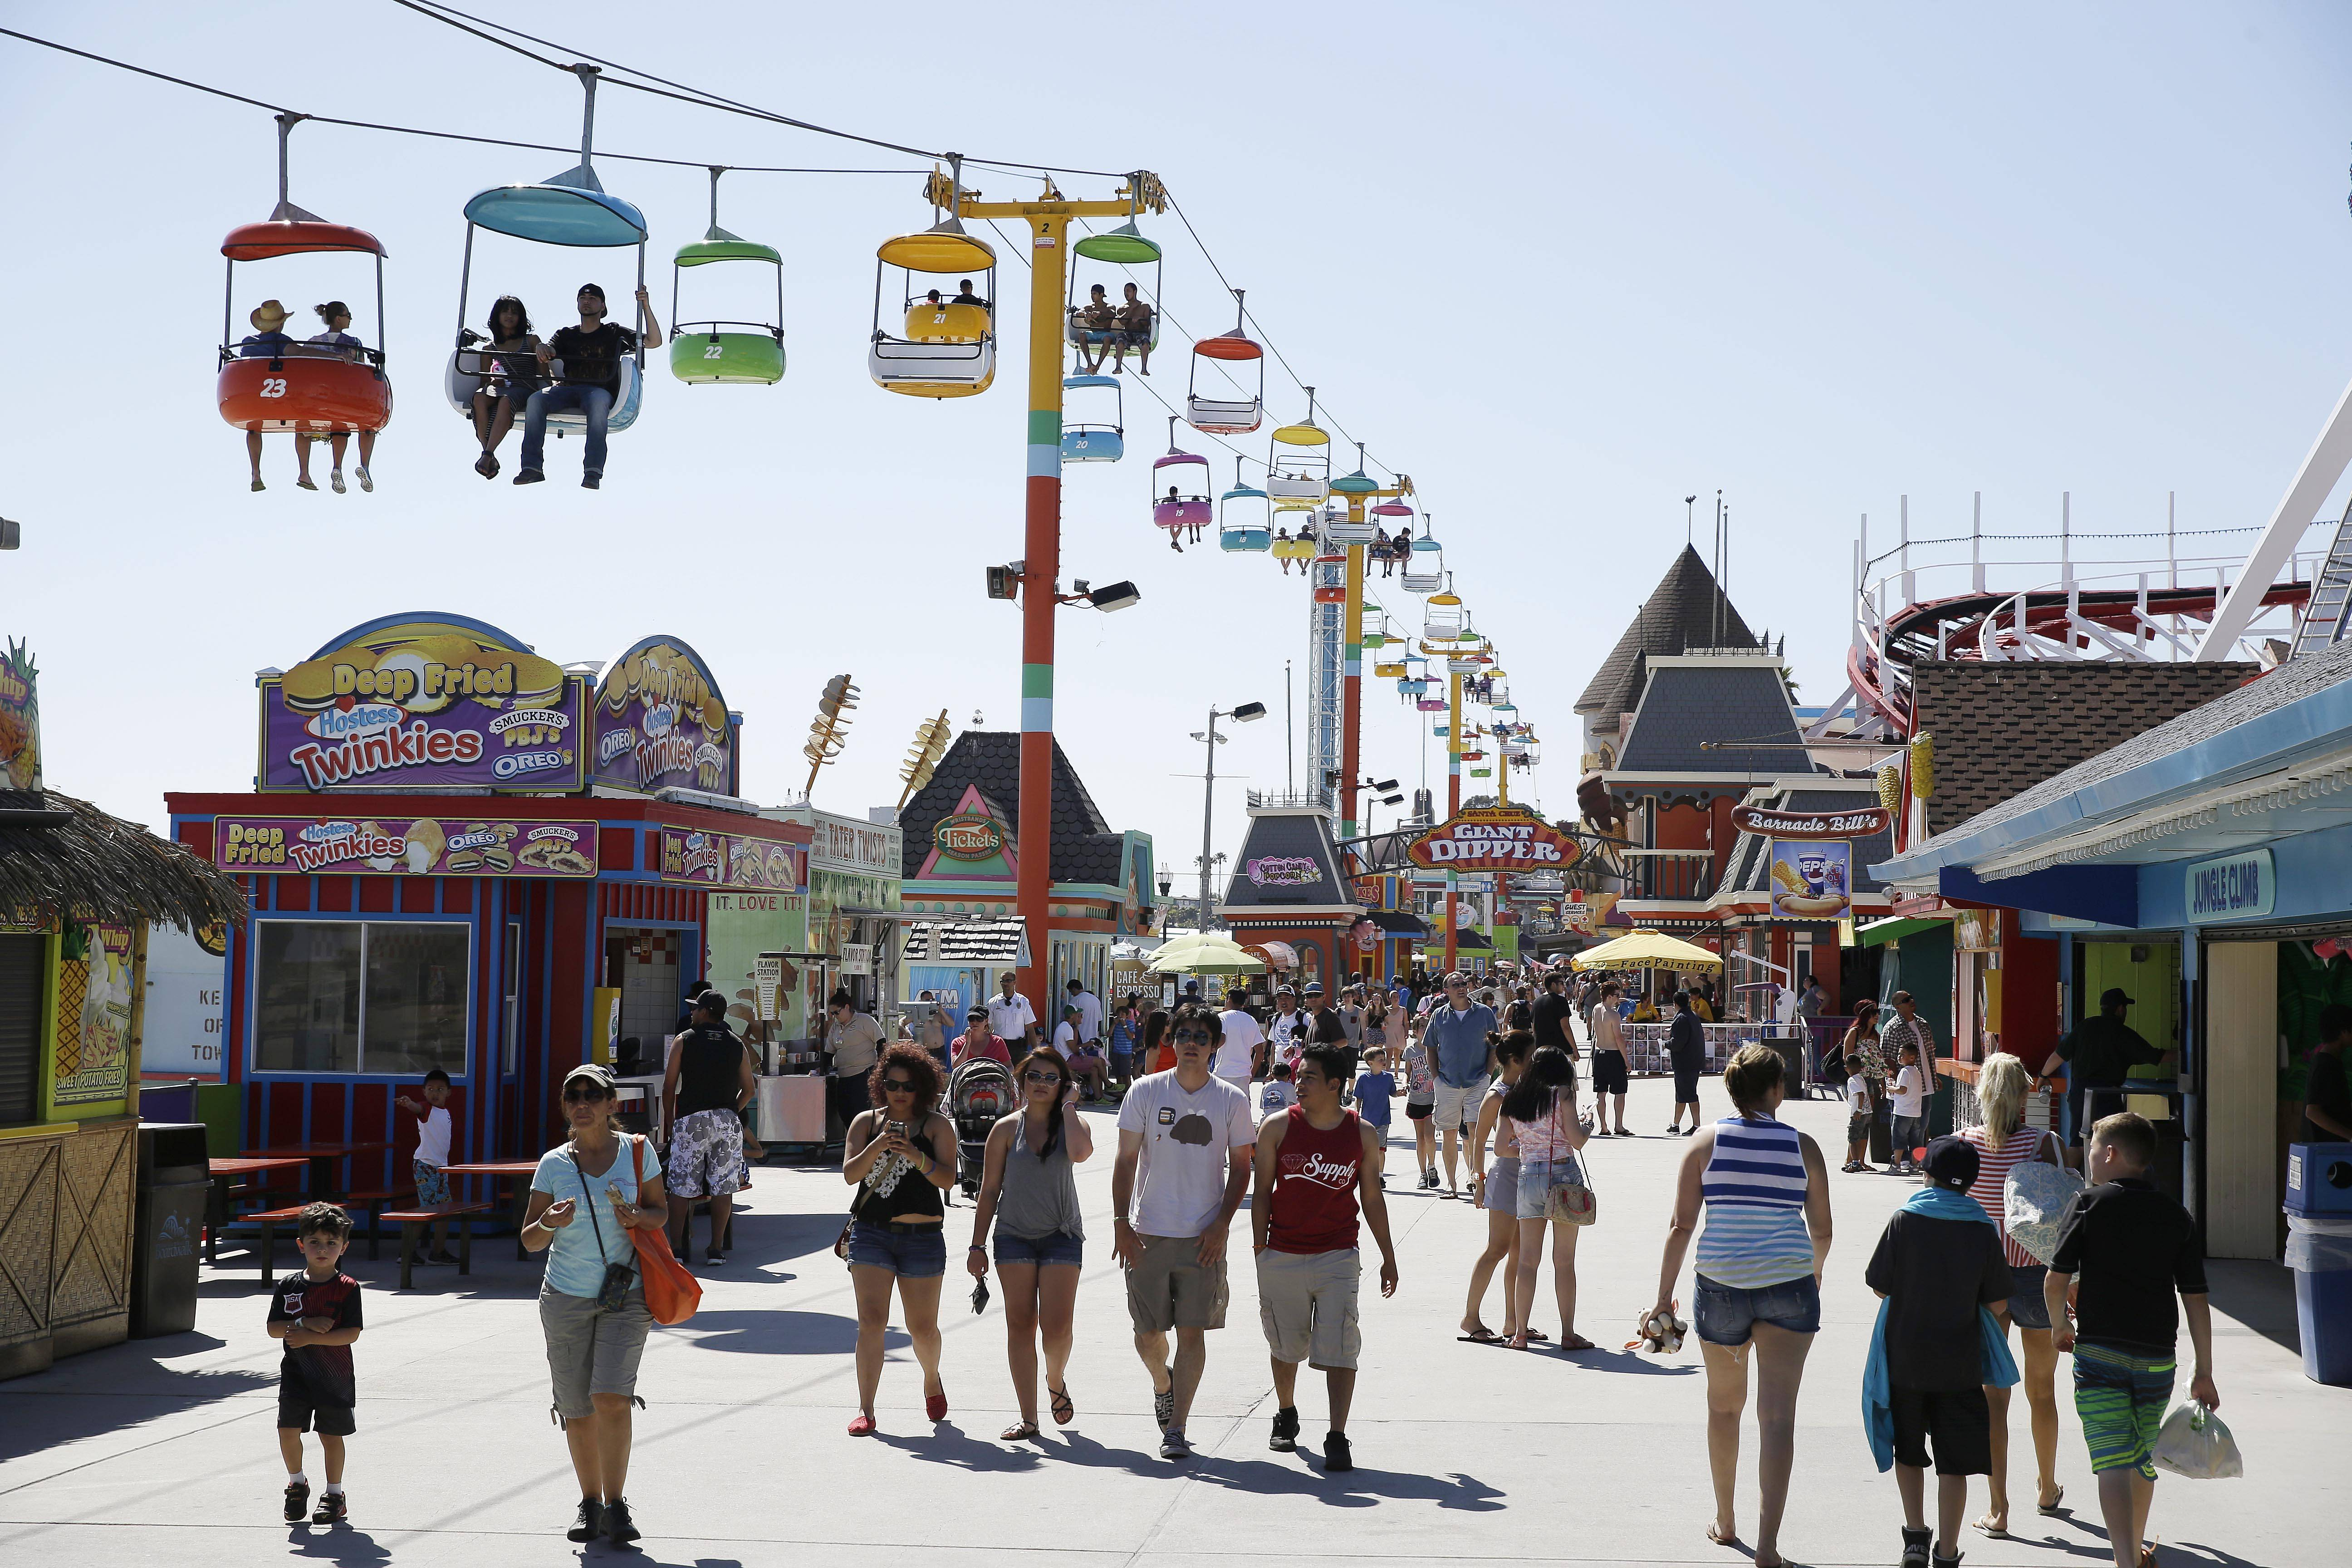 People walk below the Sky Glider and make their way along the Santa Cruz Beach Boardwalk in Santa Cruz, Calif. Riding the rides costs money, but there's no fee to stroll along the historic boardwalk and enjoy the sights and sounds.